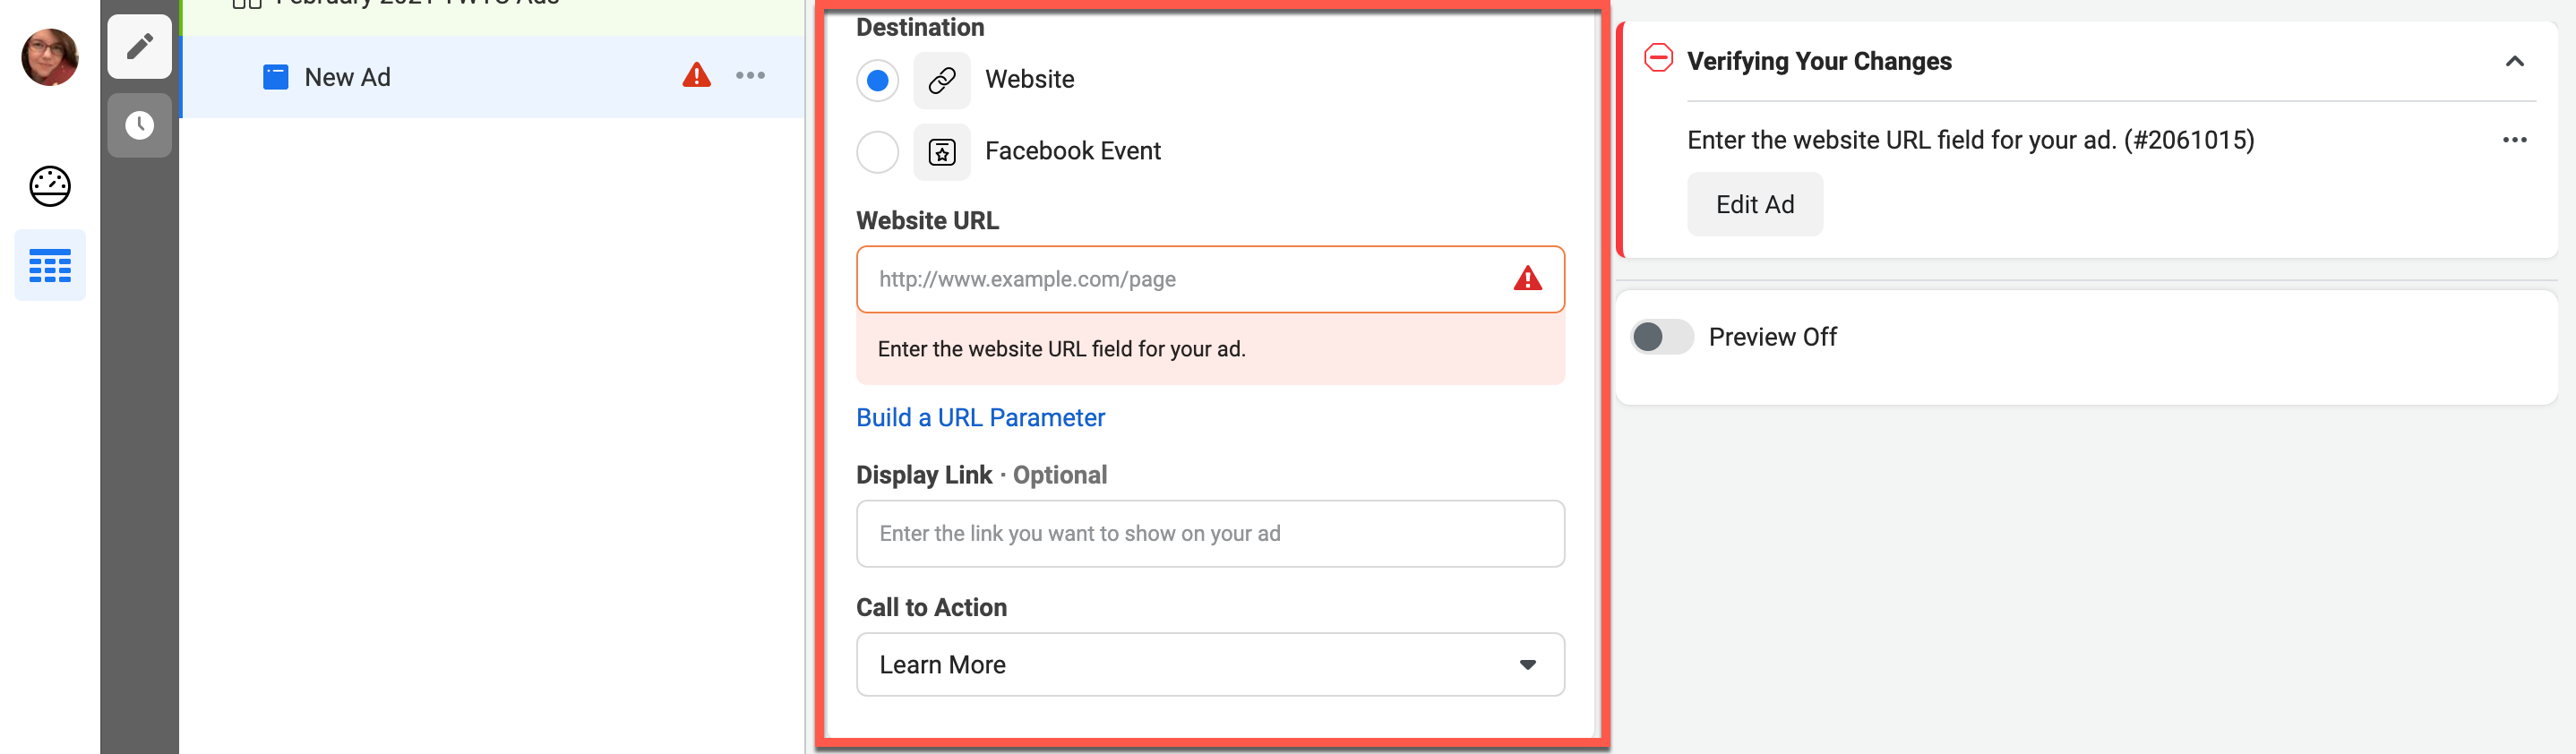 how-to-get-started-with-facebook-paid-advertising-19 How to Get Started With Facebook Paid Advertising